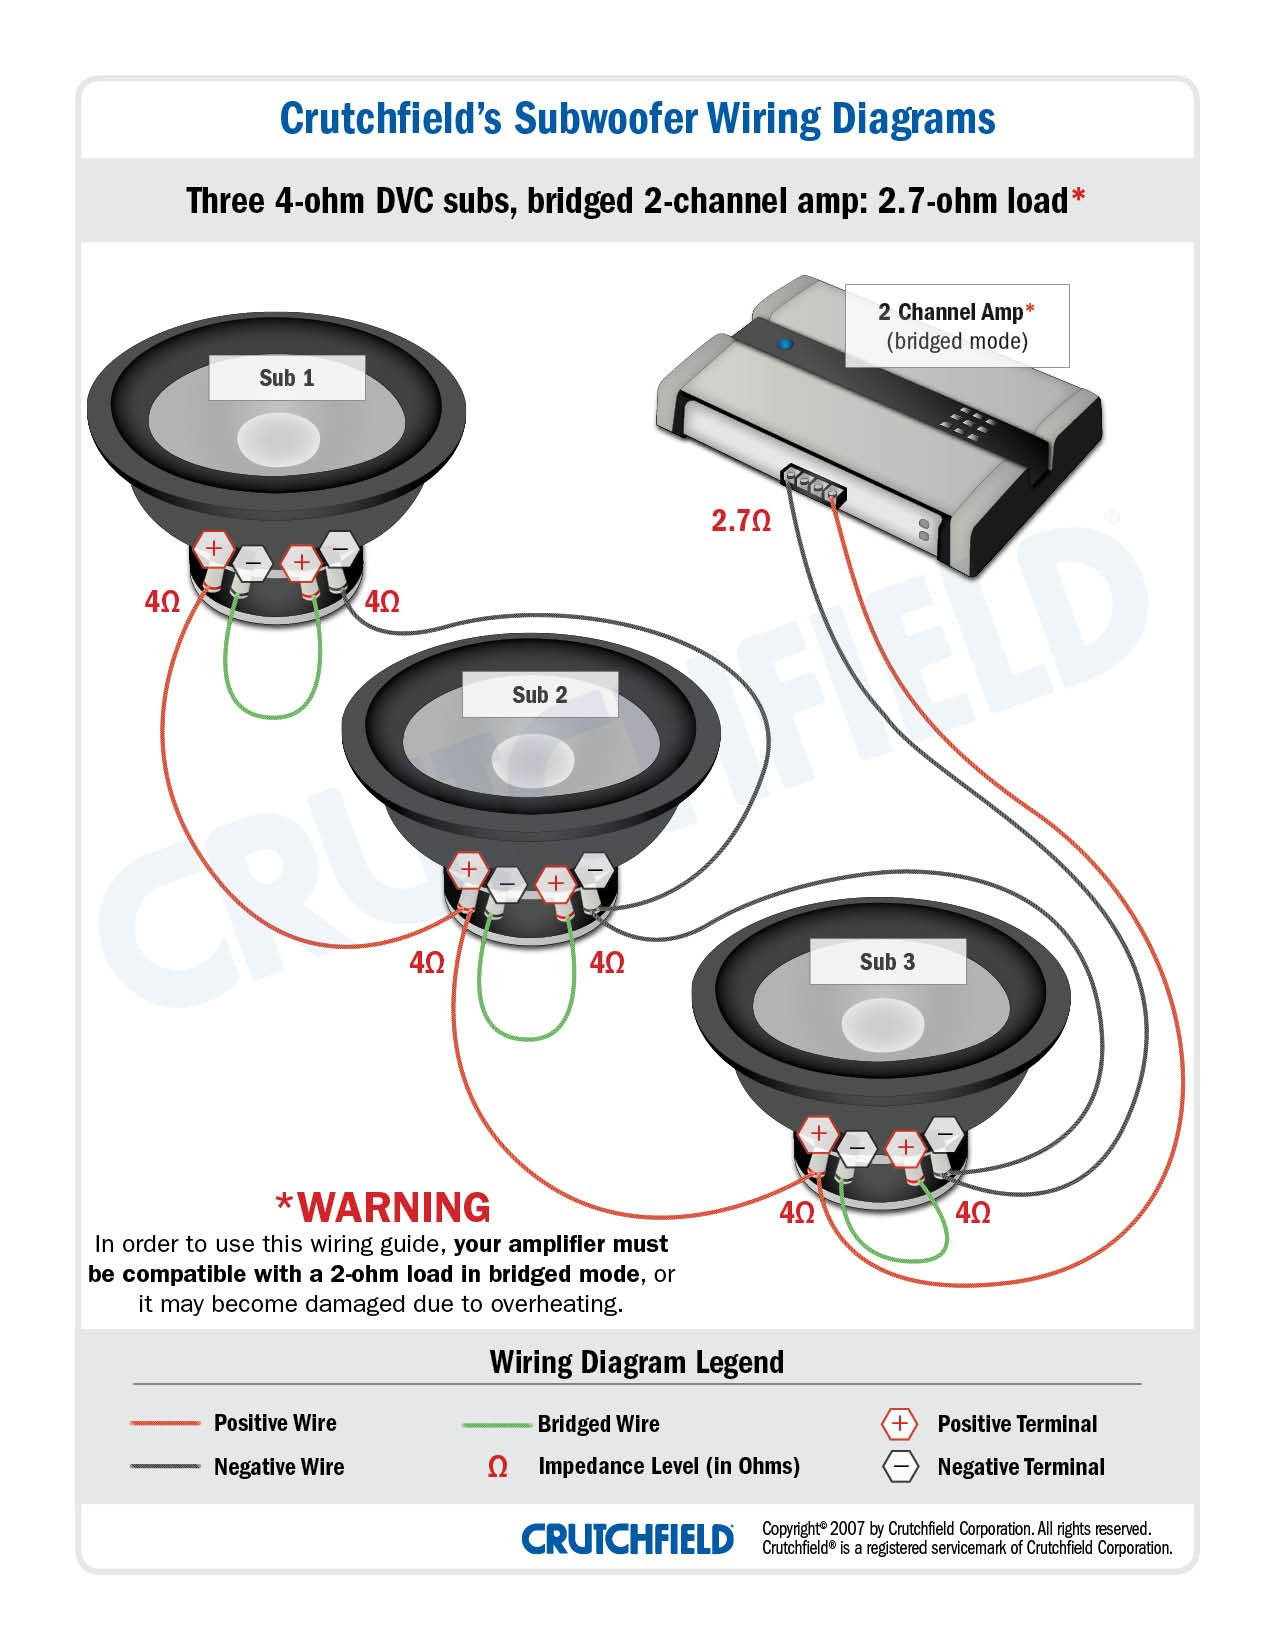 Wiring Diagram for Car Amplifier and Subwoofer Best Wiring A Subwoofer Everything You Need to Know About Of Wiring Diagram for Car Amplifier and Subwoofer